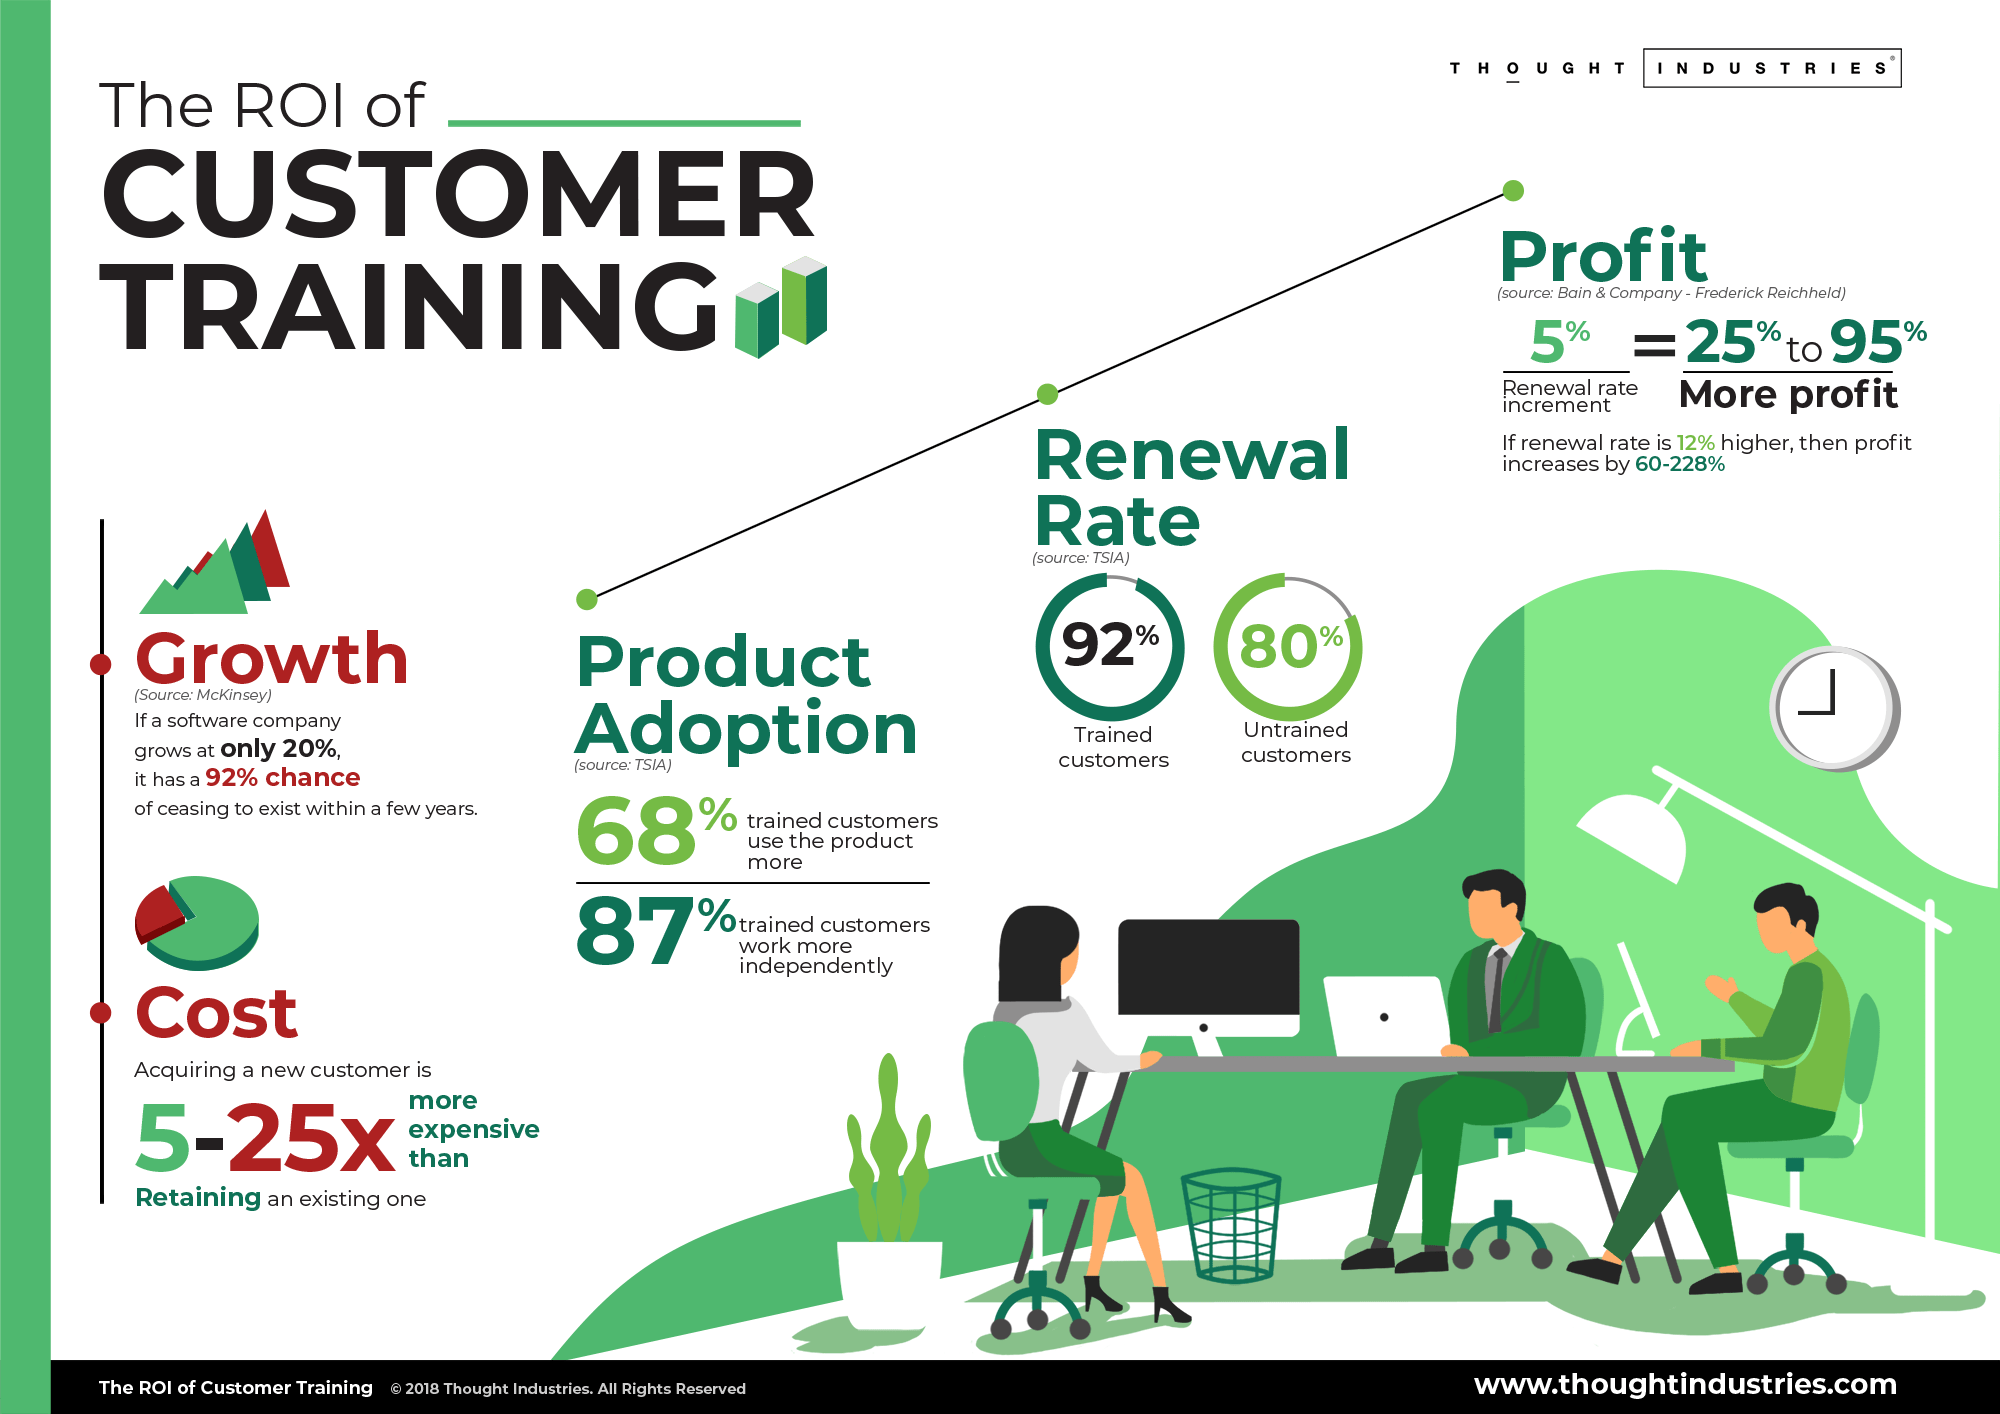 thought-industries-roi-of-customer-training